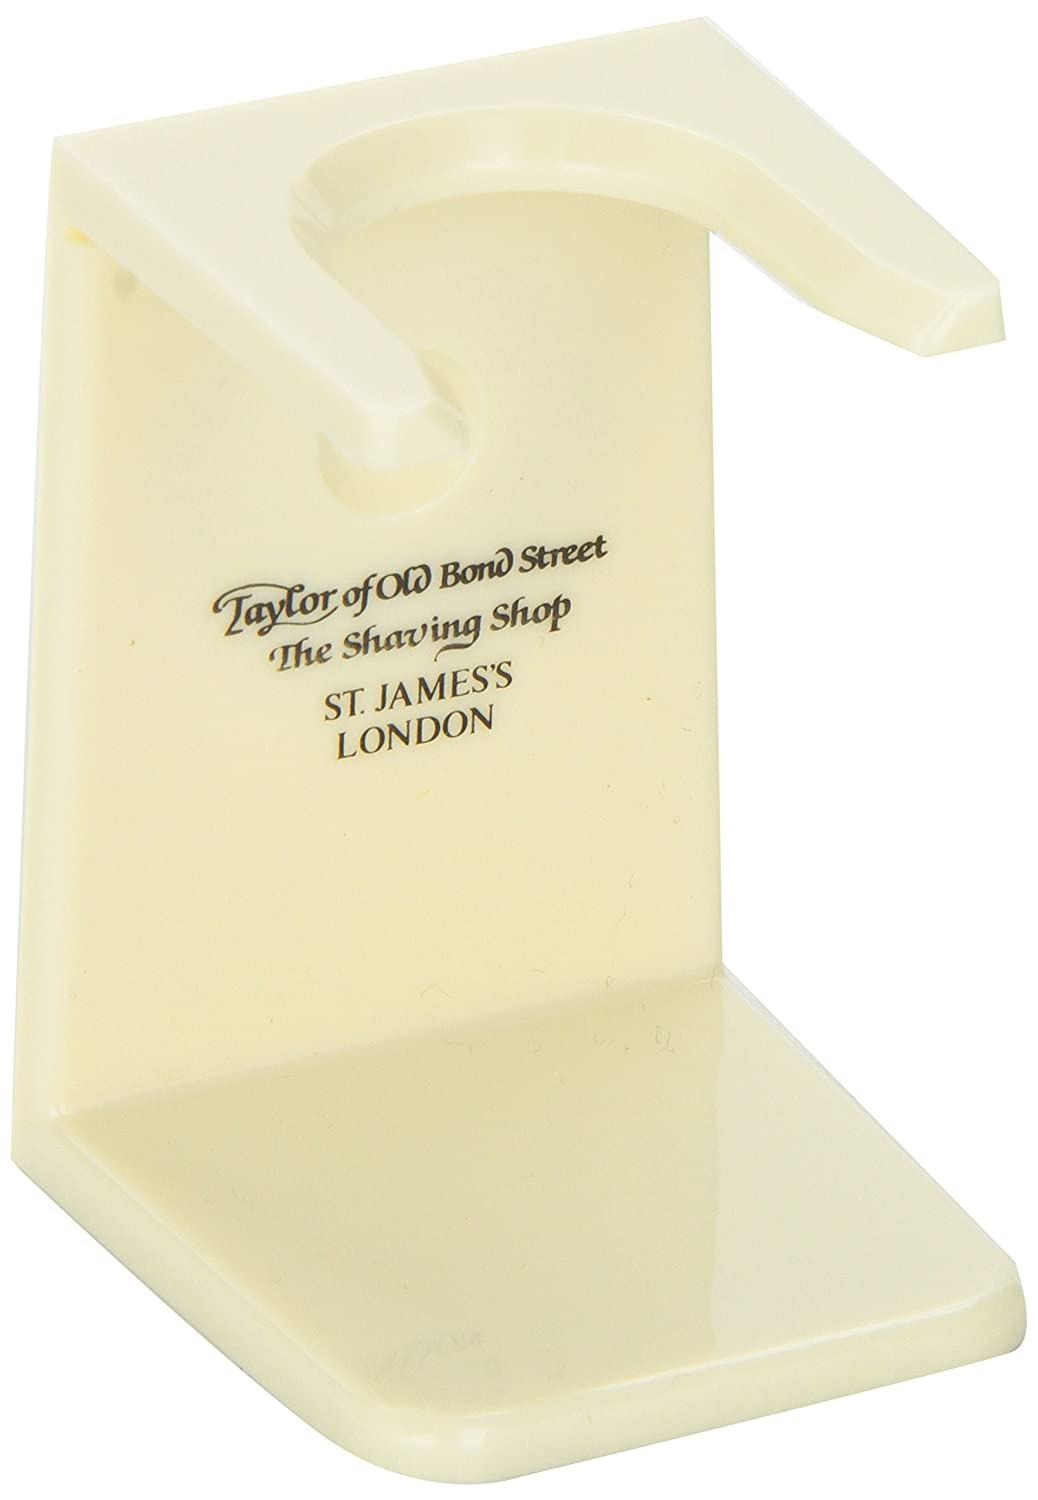 Taylor of Old Bond Street Imitation Ivory Shaving Brush Stand, 1-Count Spicy World of USA Inc 05005